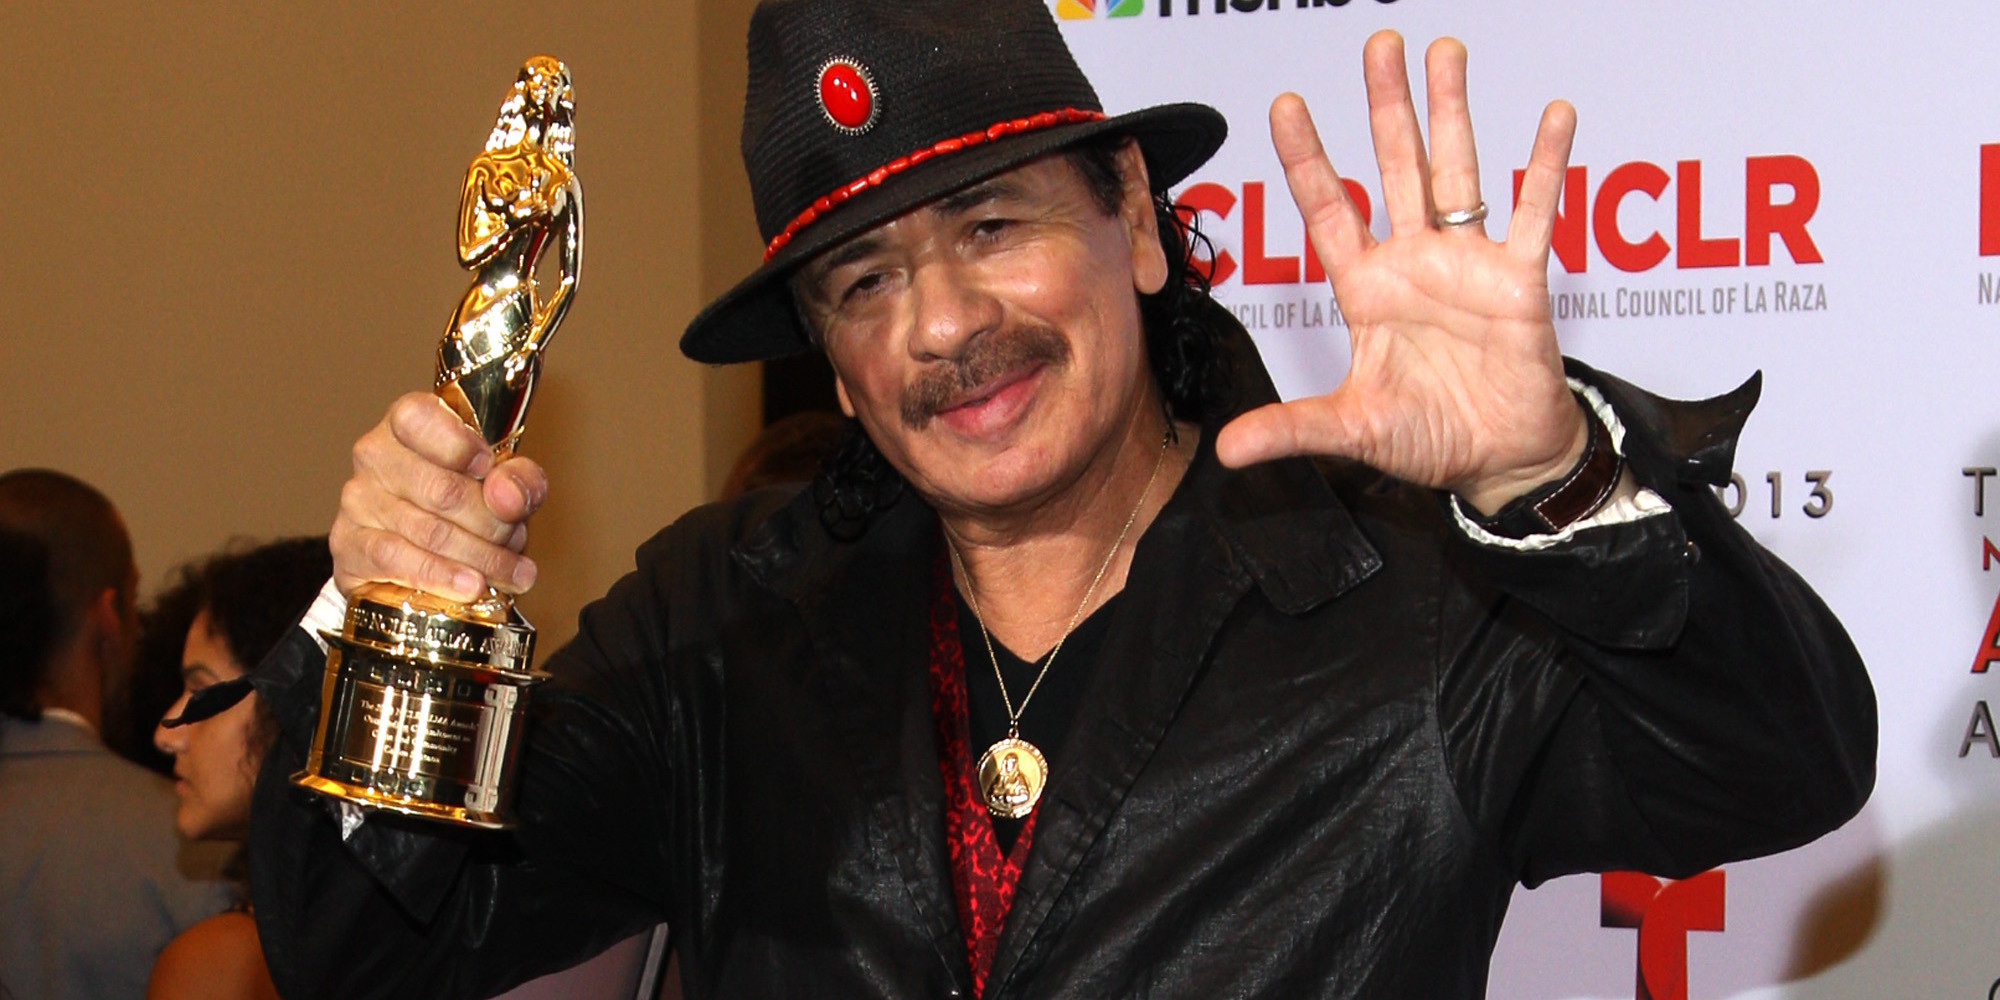 Carlos Santana poses backstage with the award for outstanding commitment to cause and community: male at the NCLR ALMA Awards at the Pasadena Civic Auditorium on Friday, Sept. 27, 2013, in Pasadena, Calif. (Photo by Paul Hebert/Invision/AP Images)